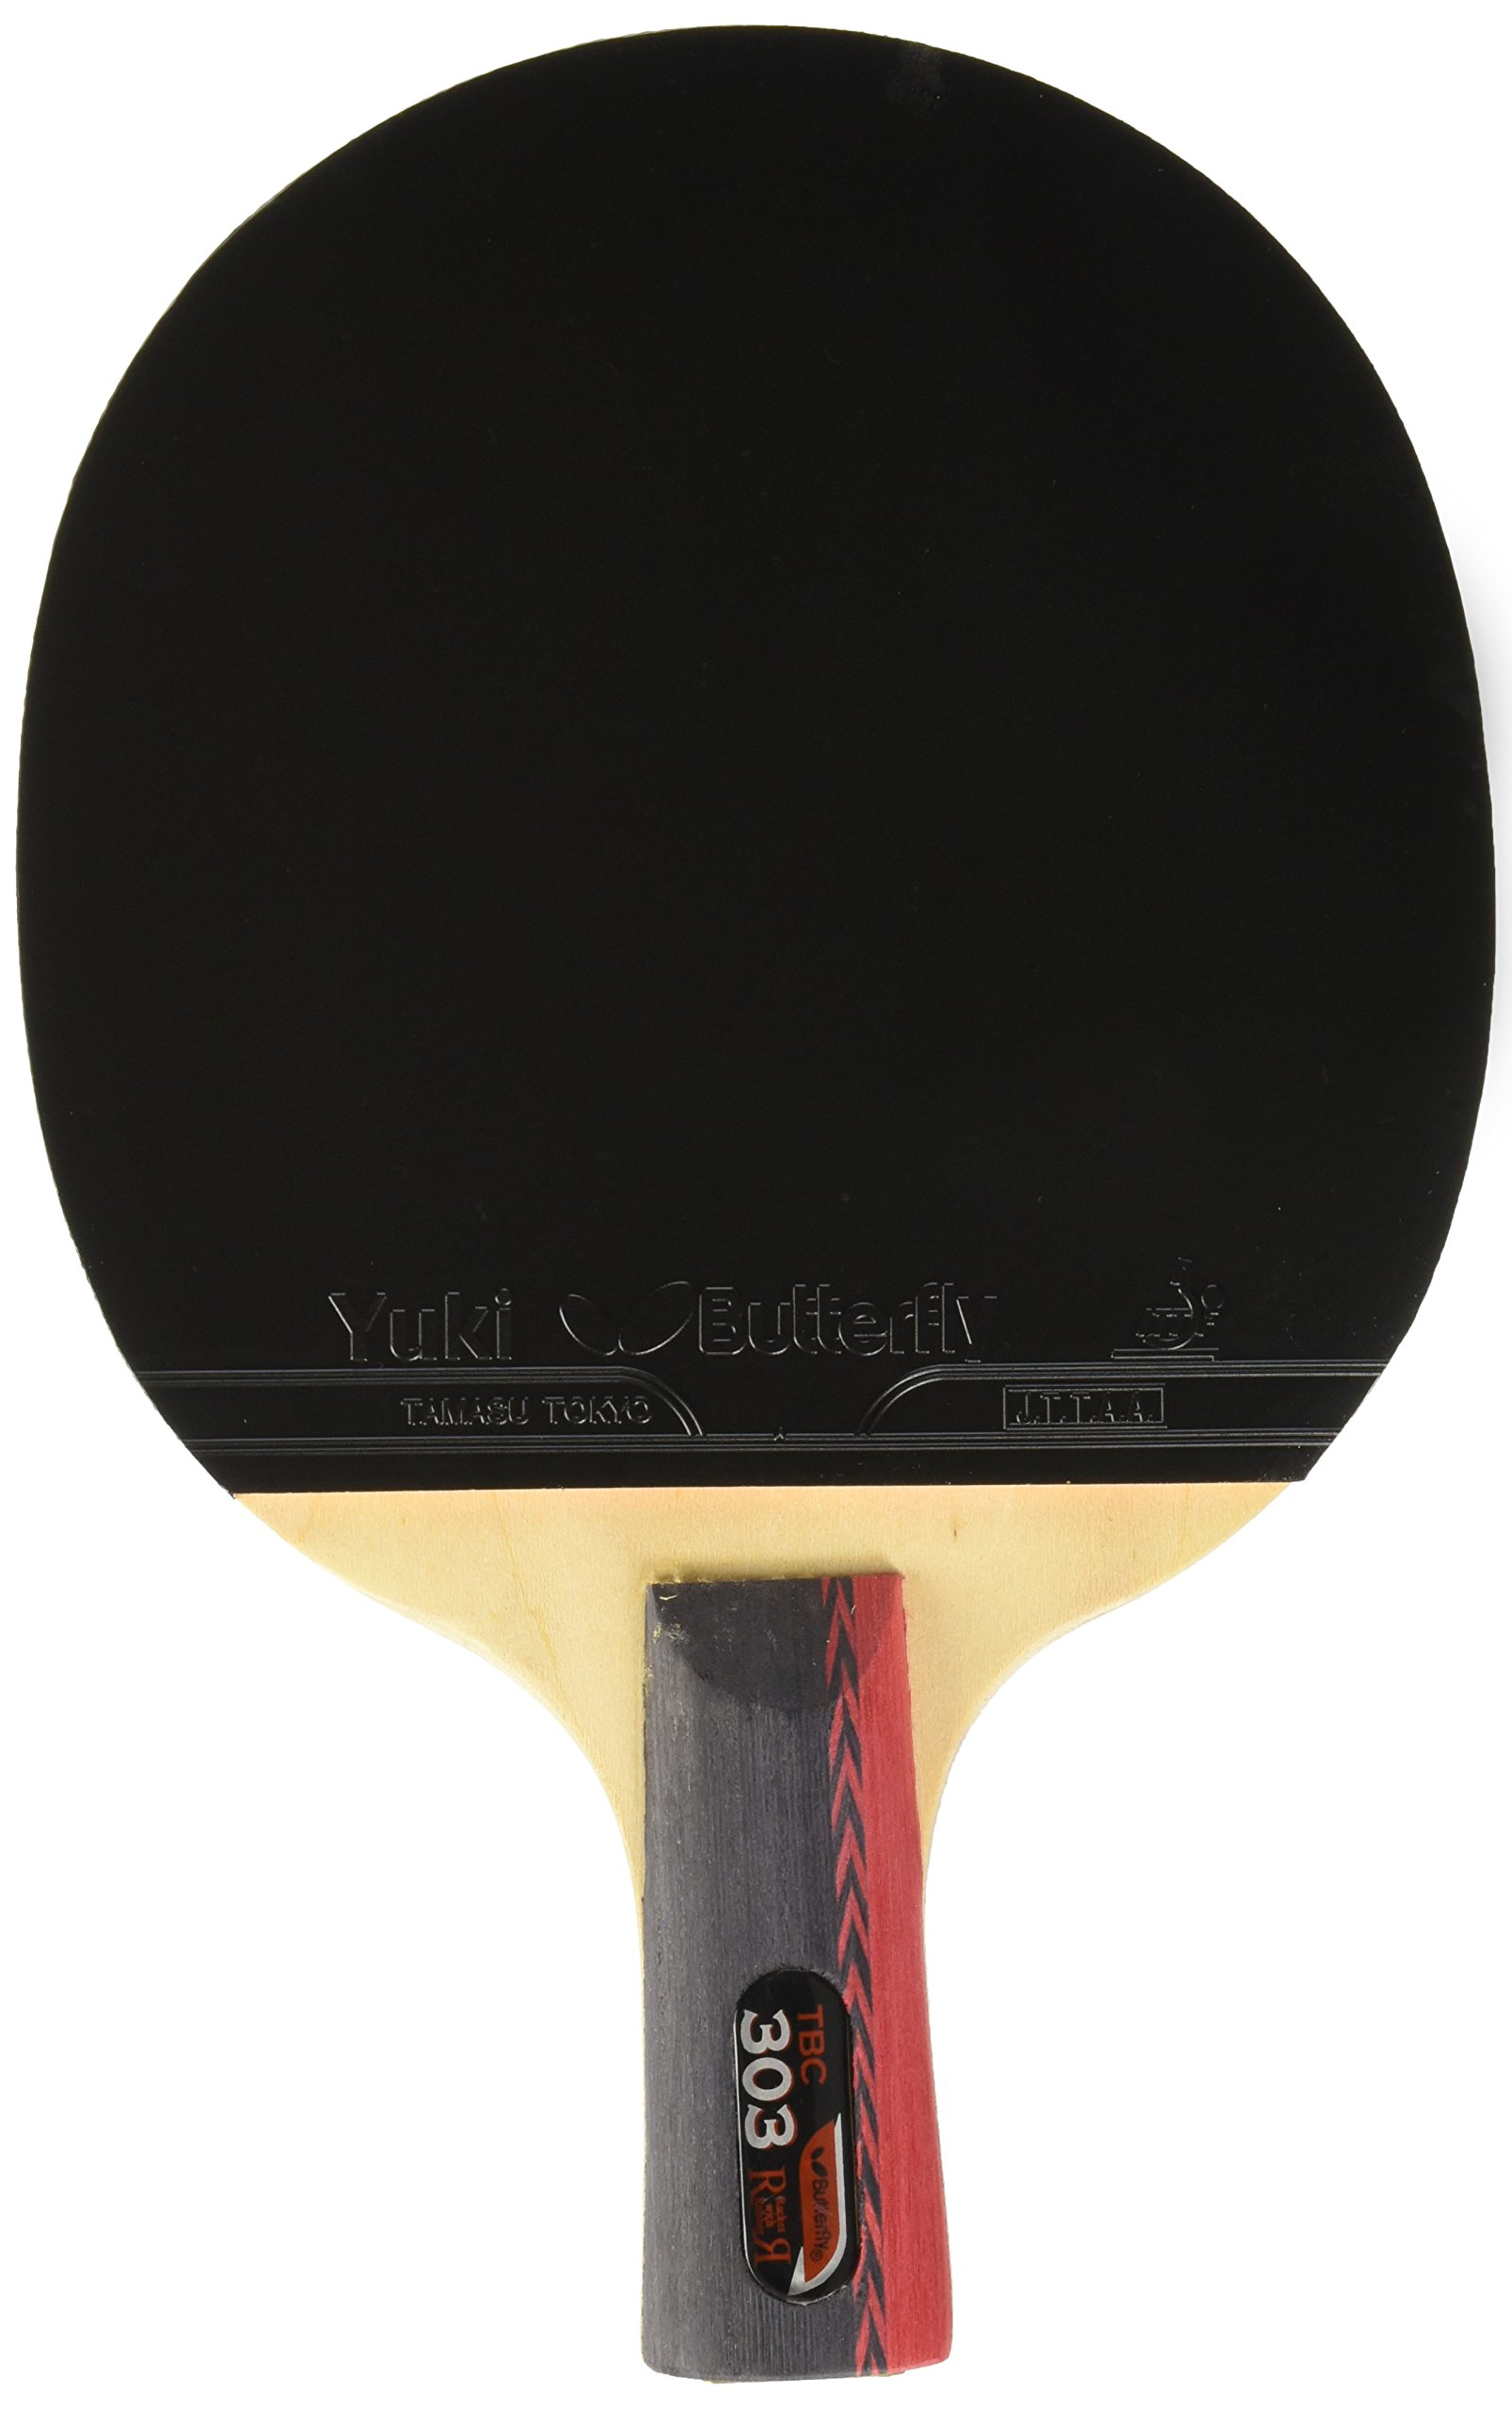 Butterfly 303 Chinese Penhold Table Tennis Racket Set - 1 Ping Pong Paddle – 1 Ping Pong Paddle Case - Pips Out and In Rubber - ITTF Approved